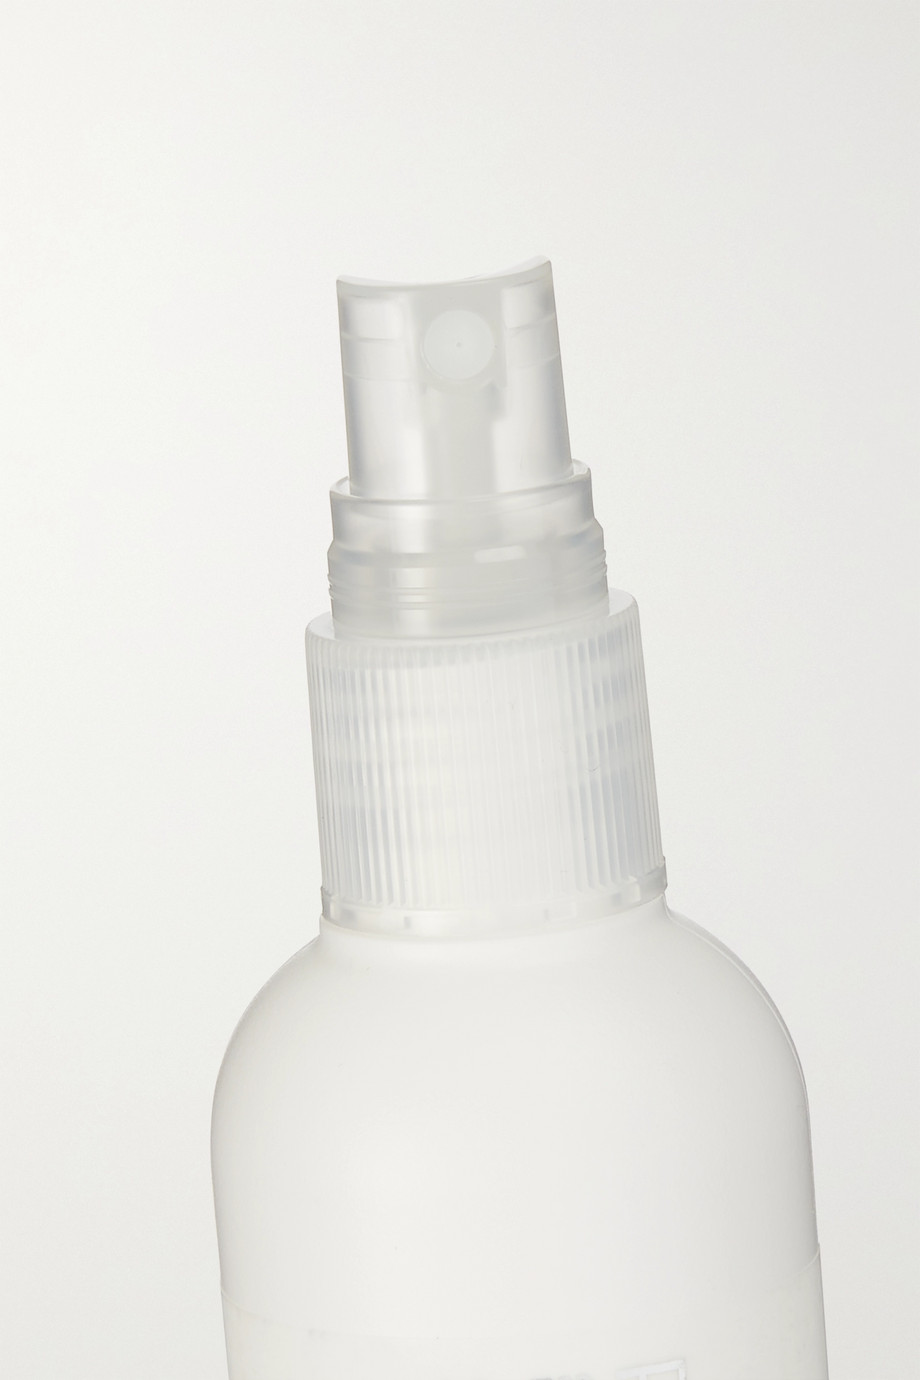 PHILIP KINGSLEY Finishing Touch Strong Hold Hairspray, 125ml